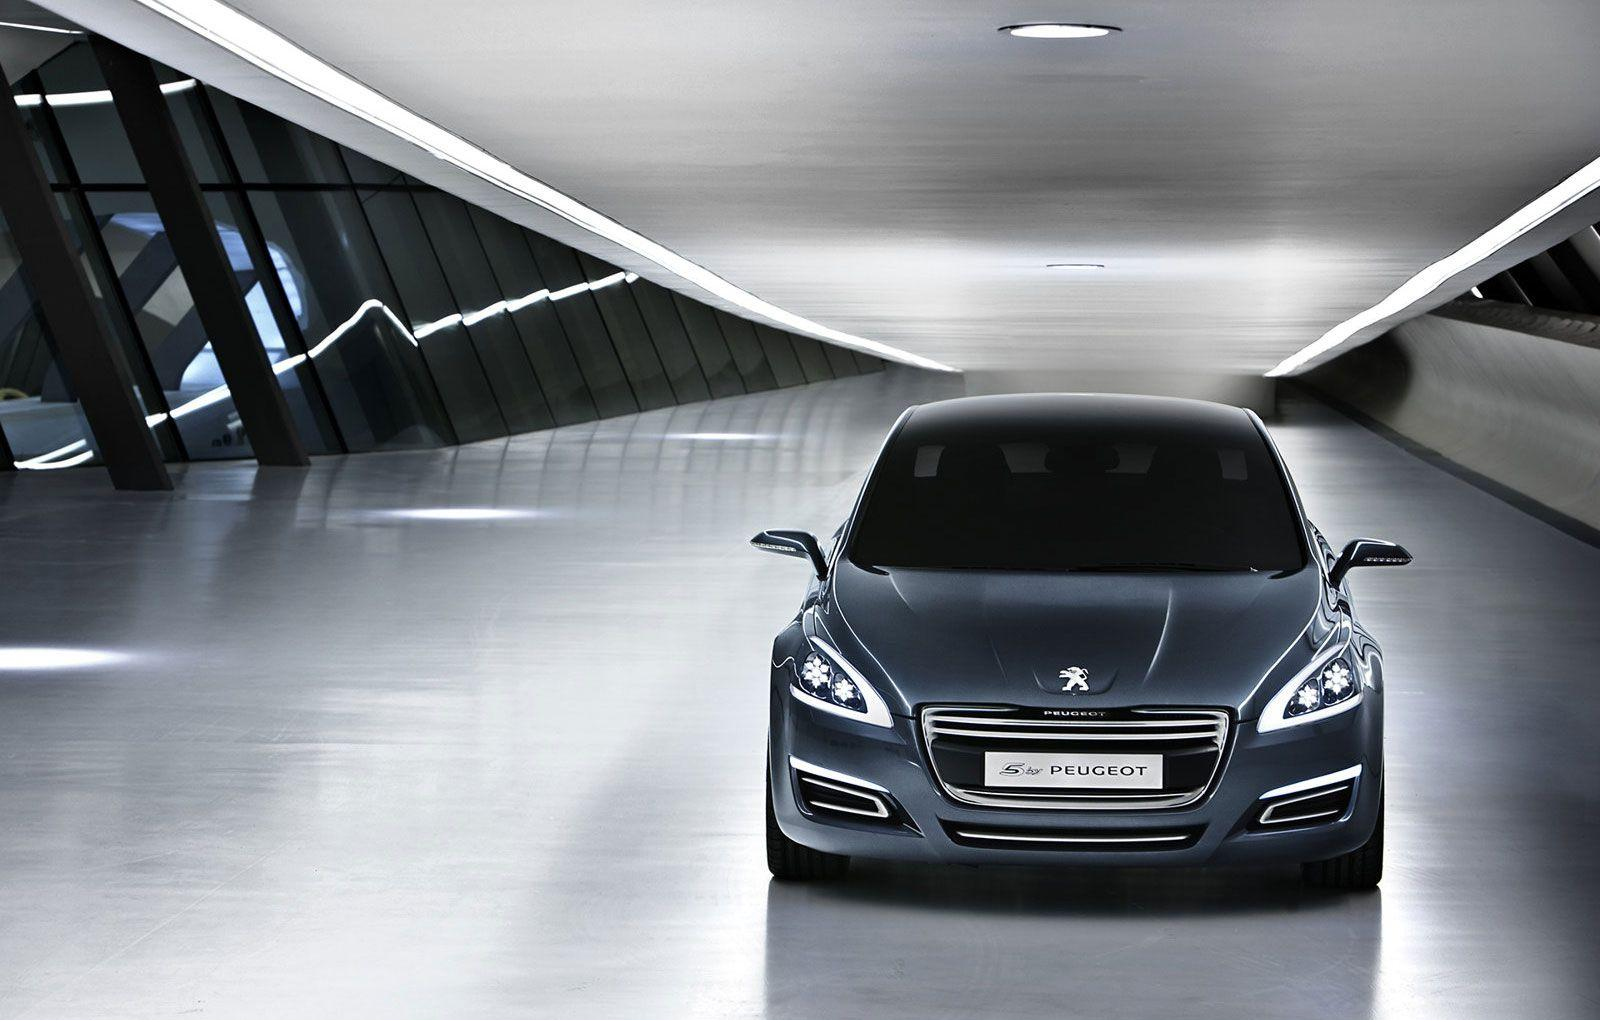 First official image of Peugeot 508 production series